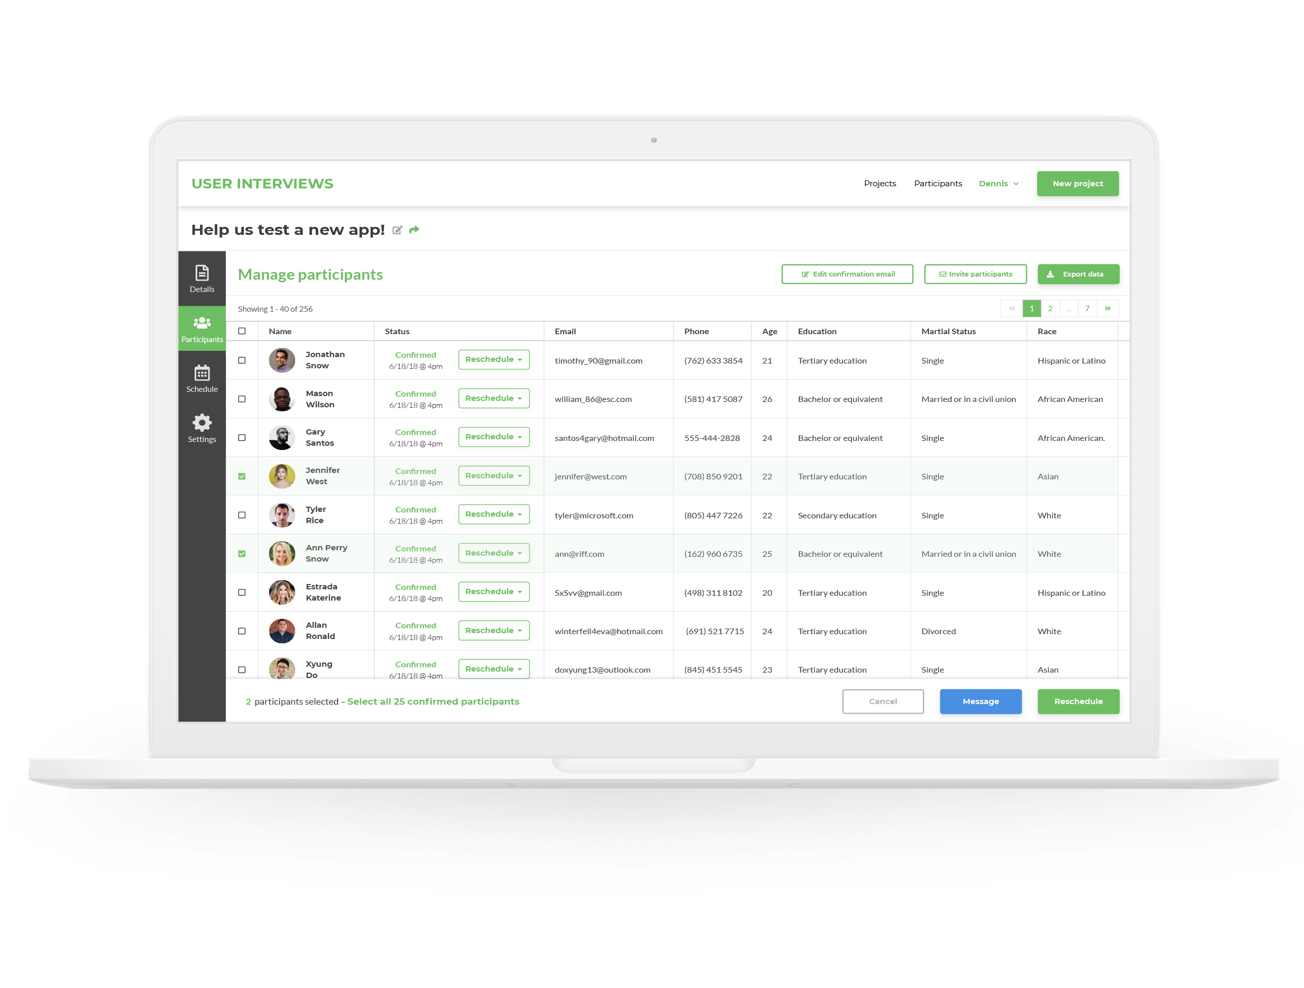 A preview of the User Interviews Dashboard